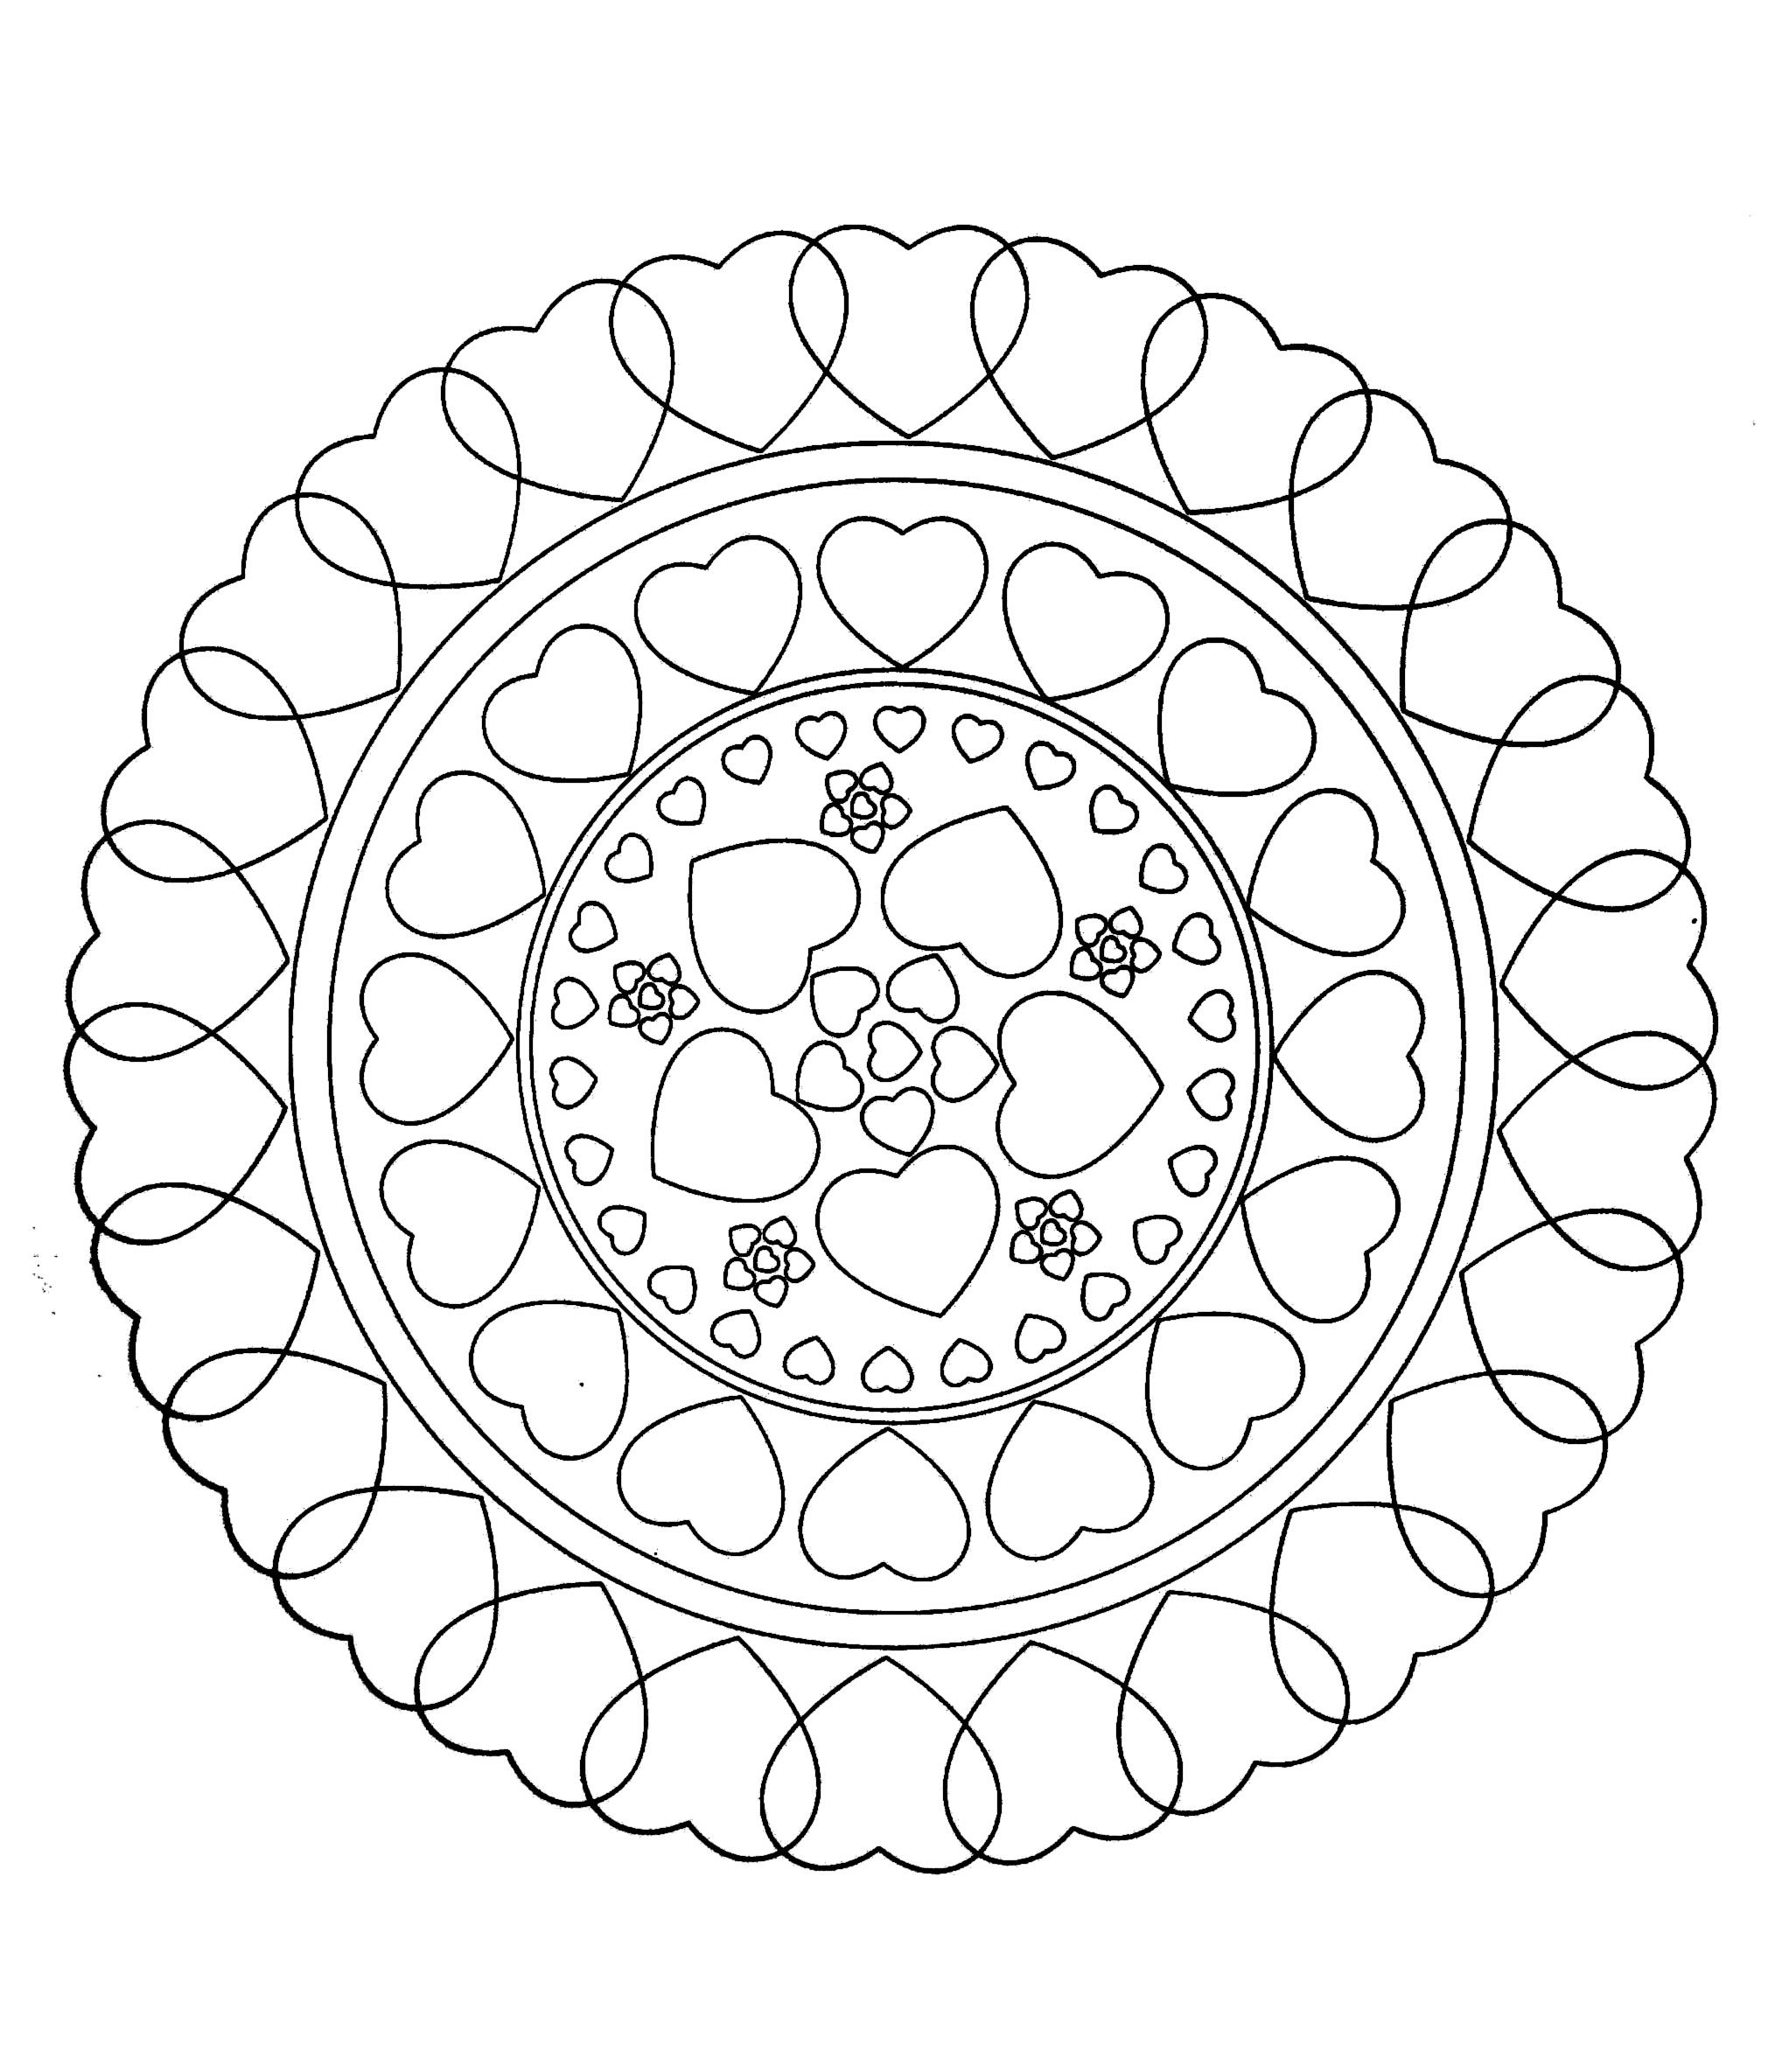 Jewish mandala coloring pages - To Print This Free Coloring Page Free Mandala To Color Hearts